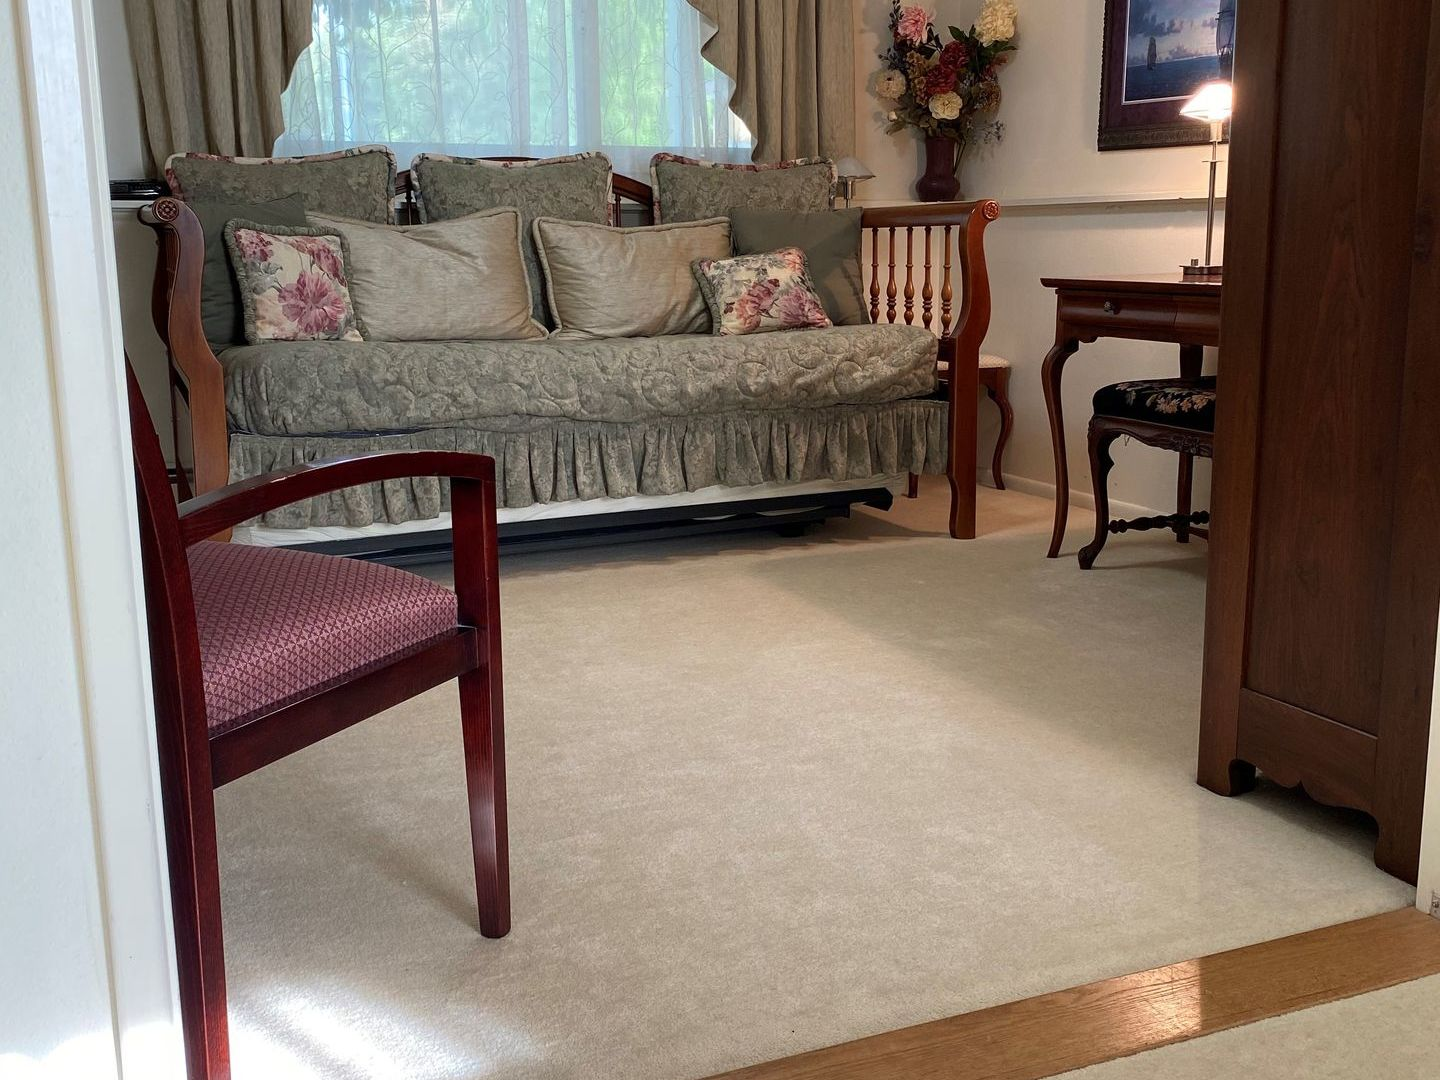 Anchorage Bed and Breakfast